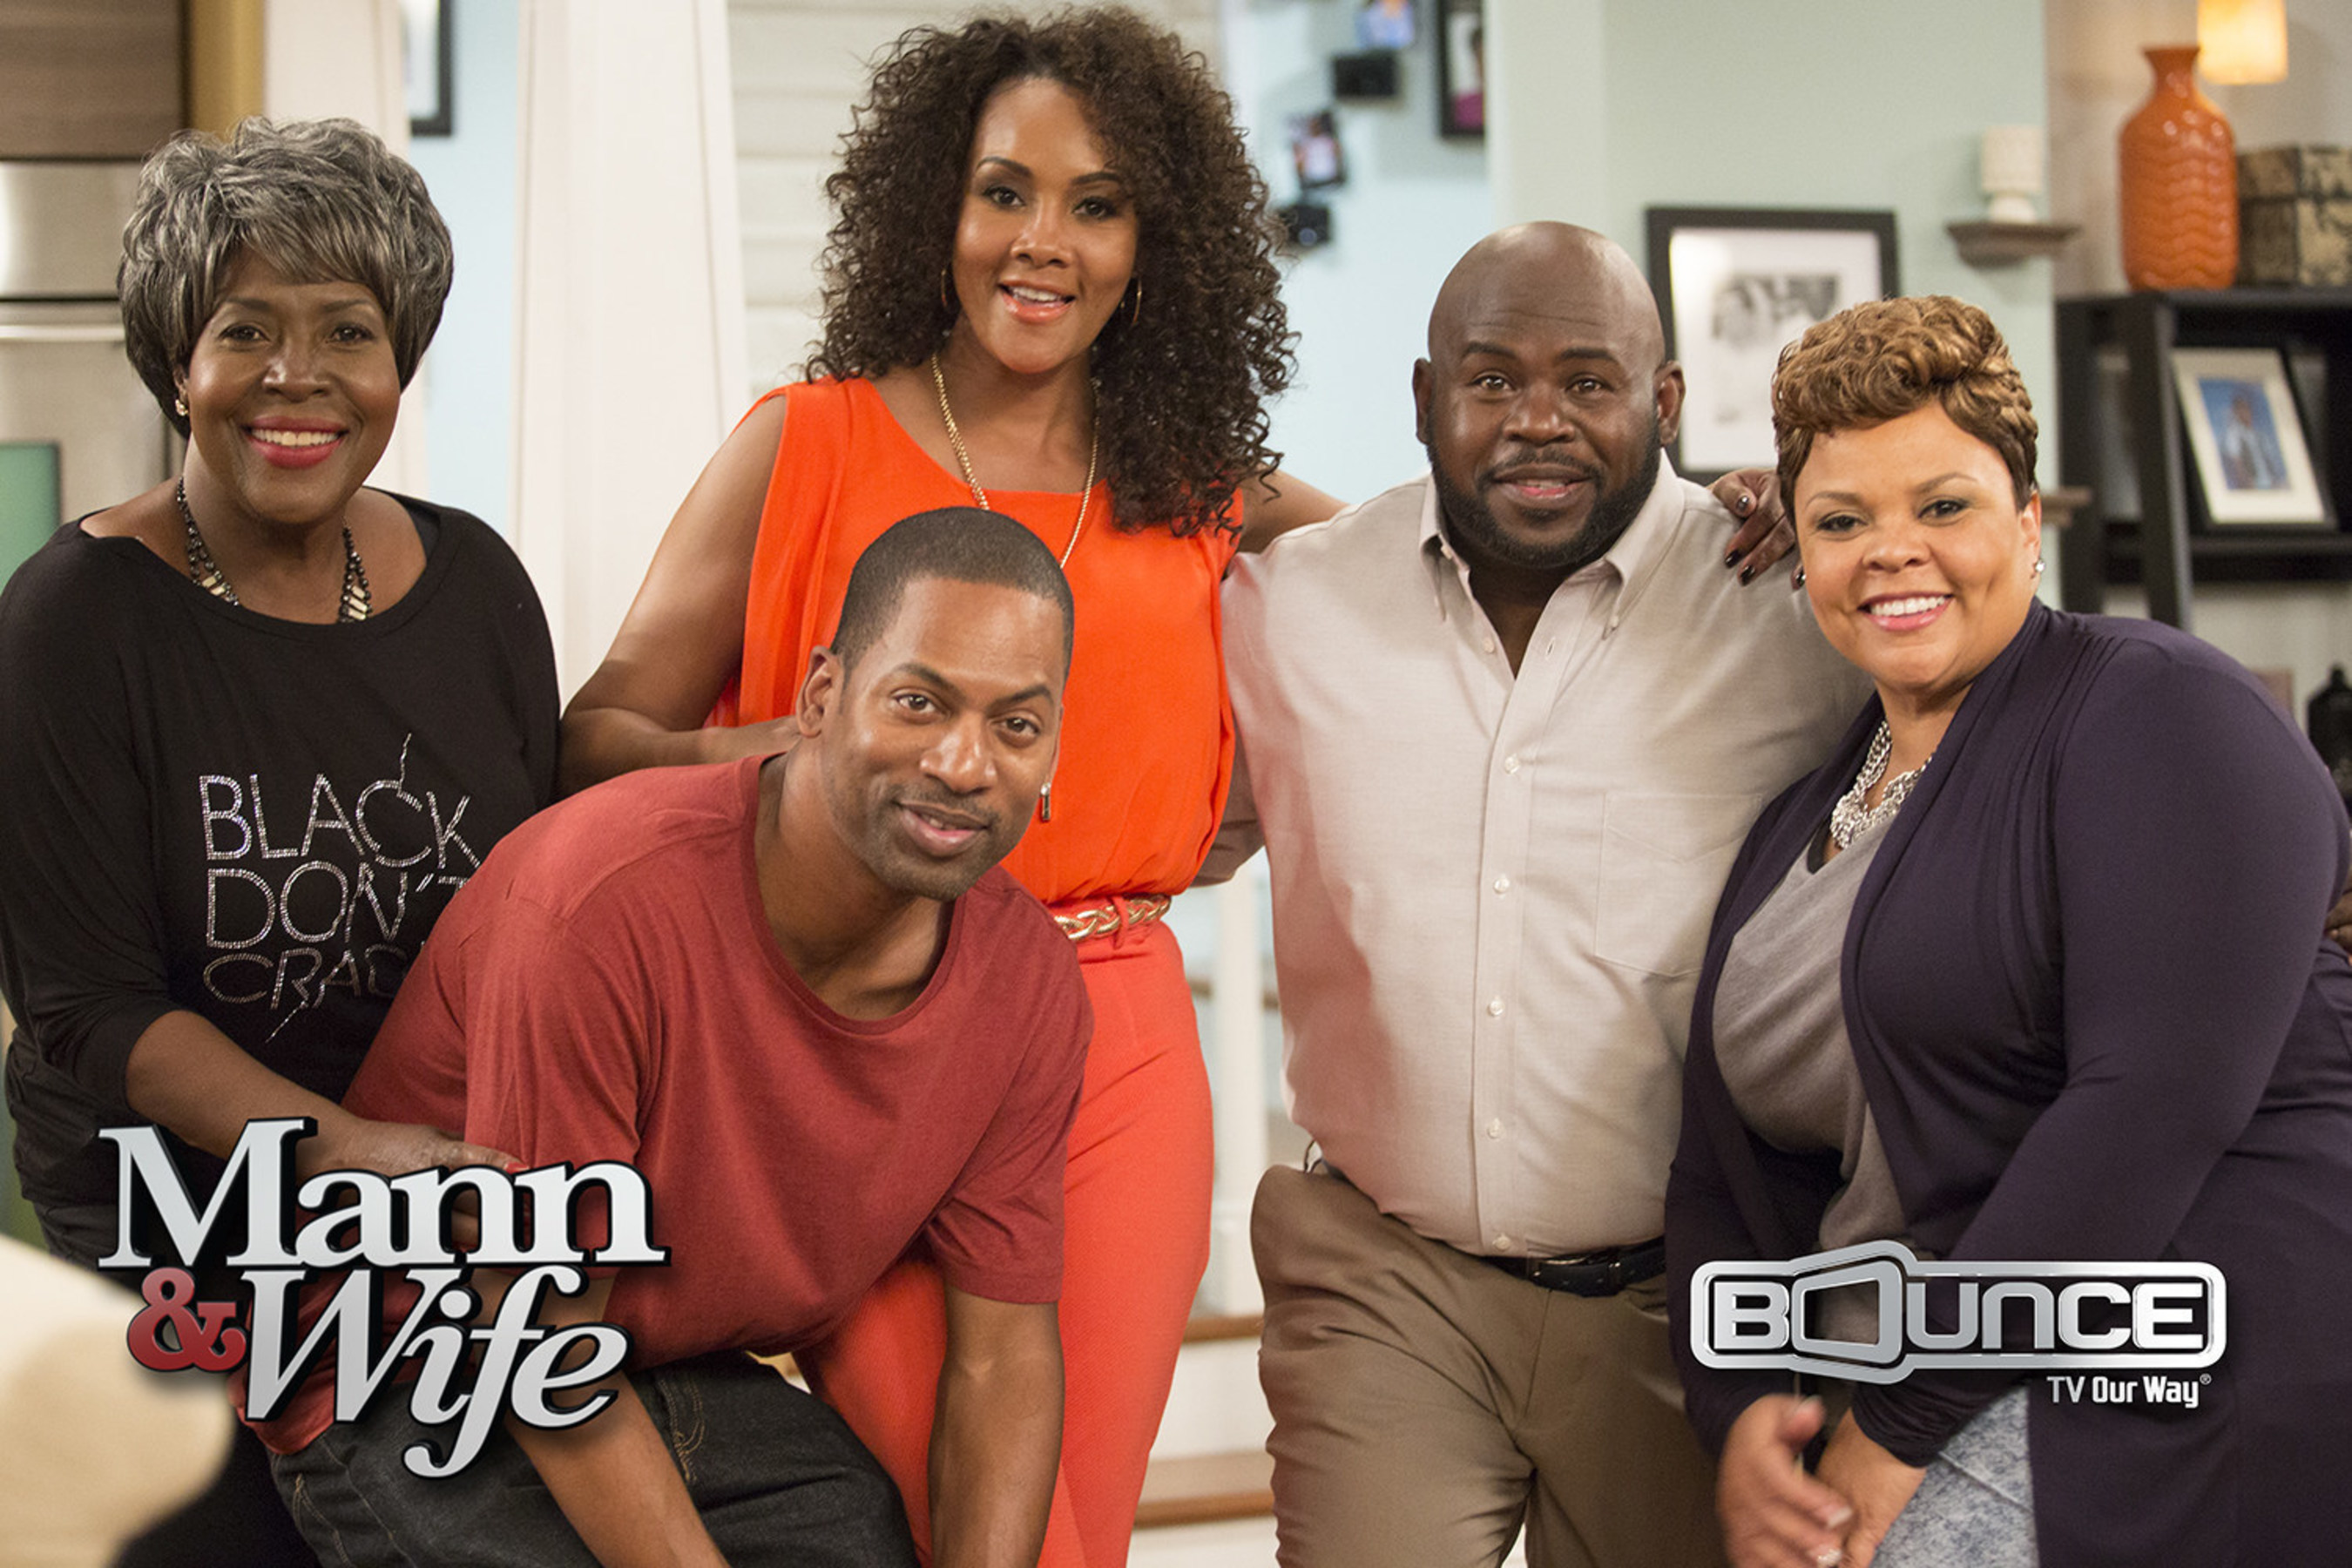 Mann & Wife is a HIT: Series Premiere of New Sitcom Starring David & Tamela Mann Becomes Most-Watched Original in Bounce TV's History